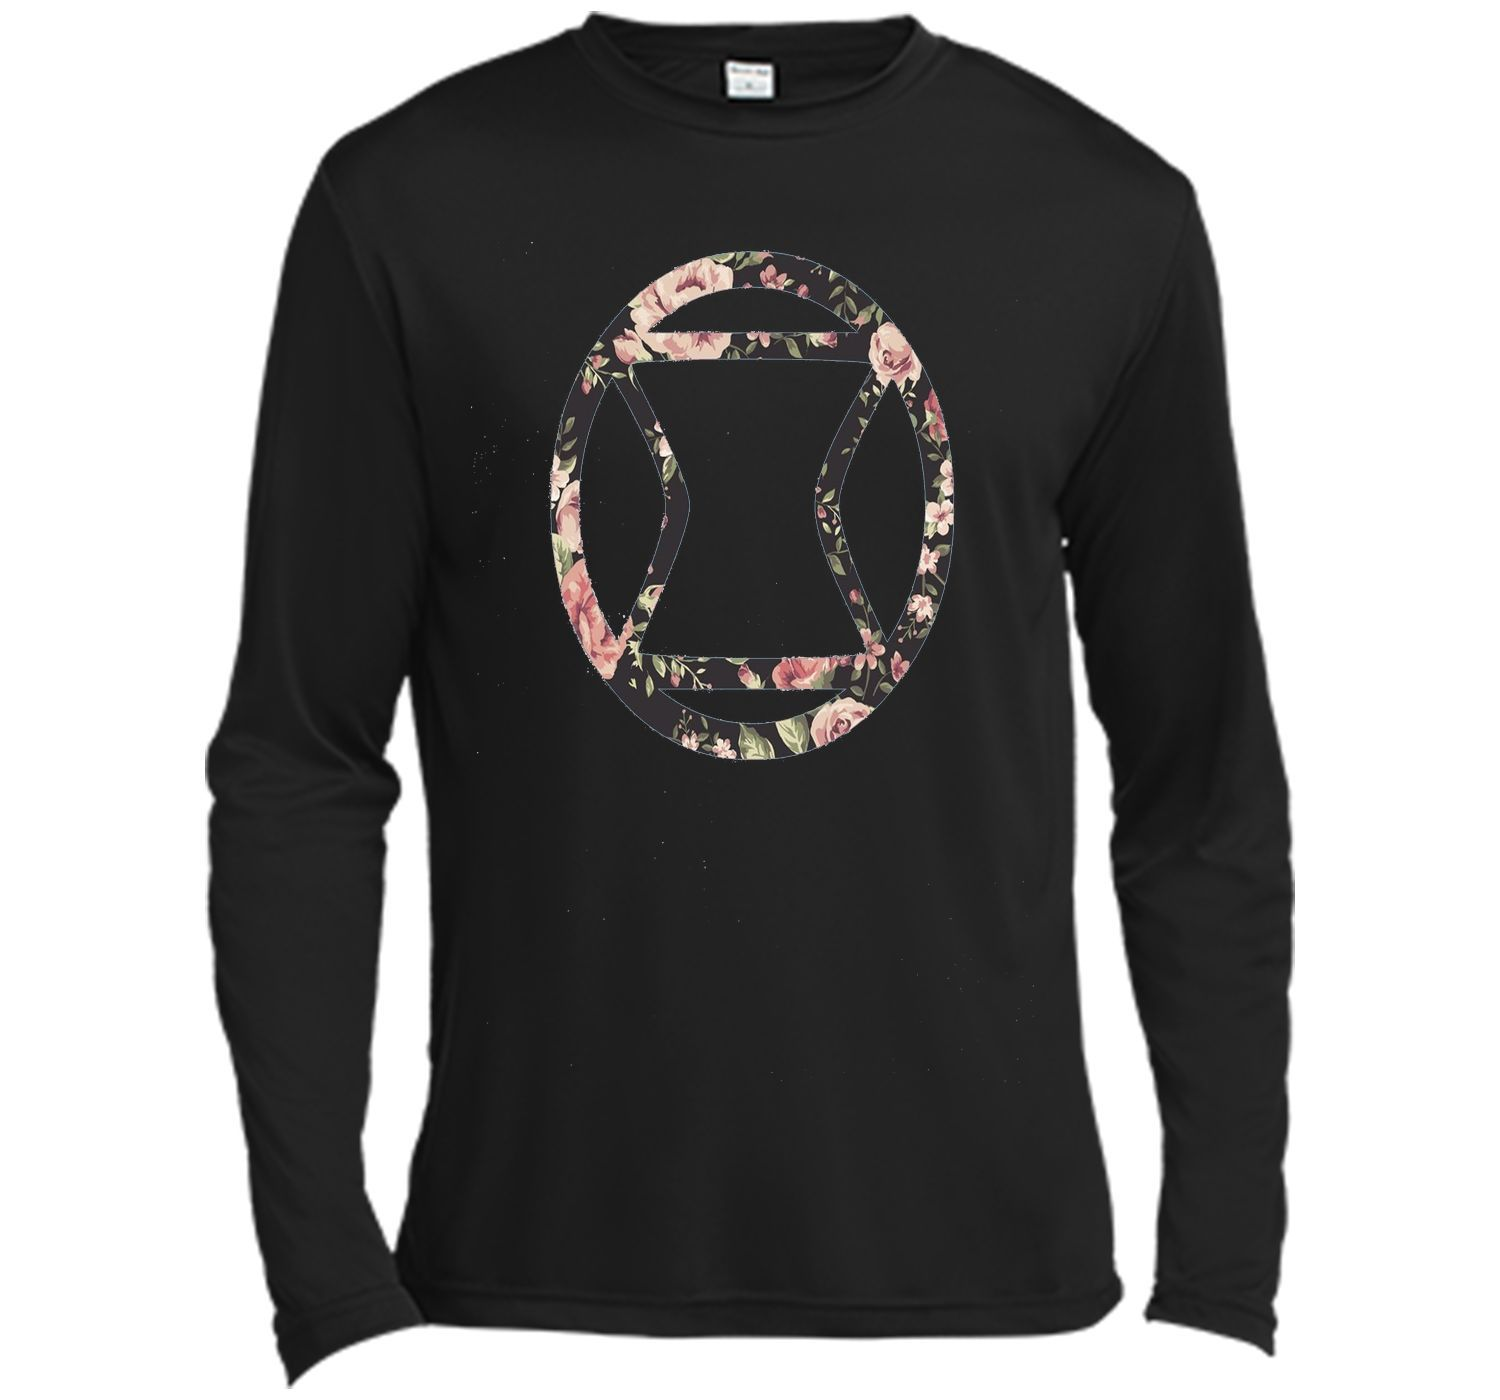 Black Widow Floral Graphic T-Shirt